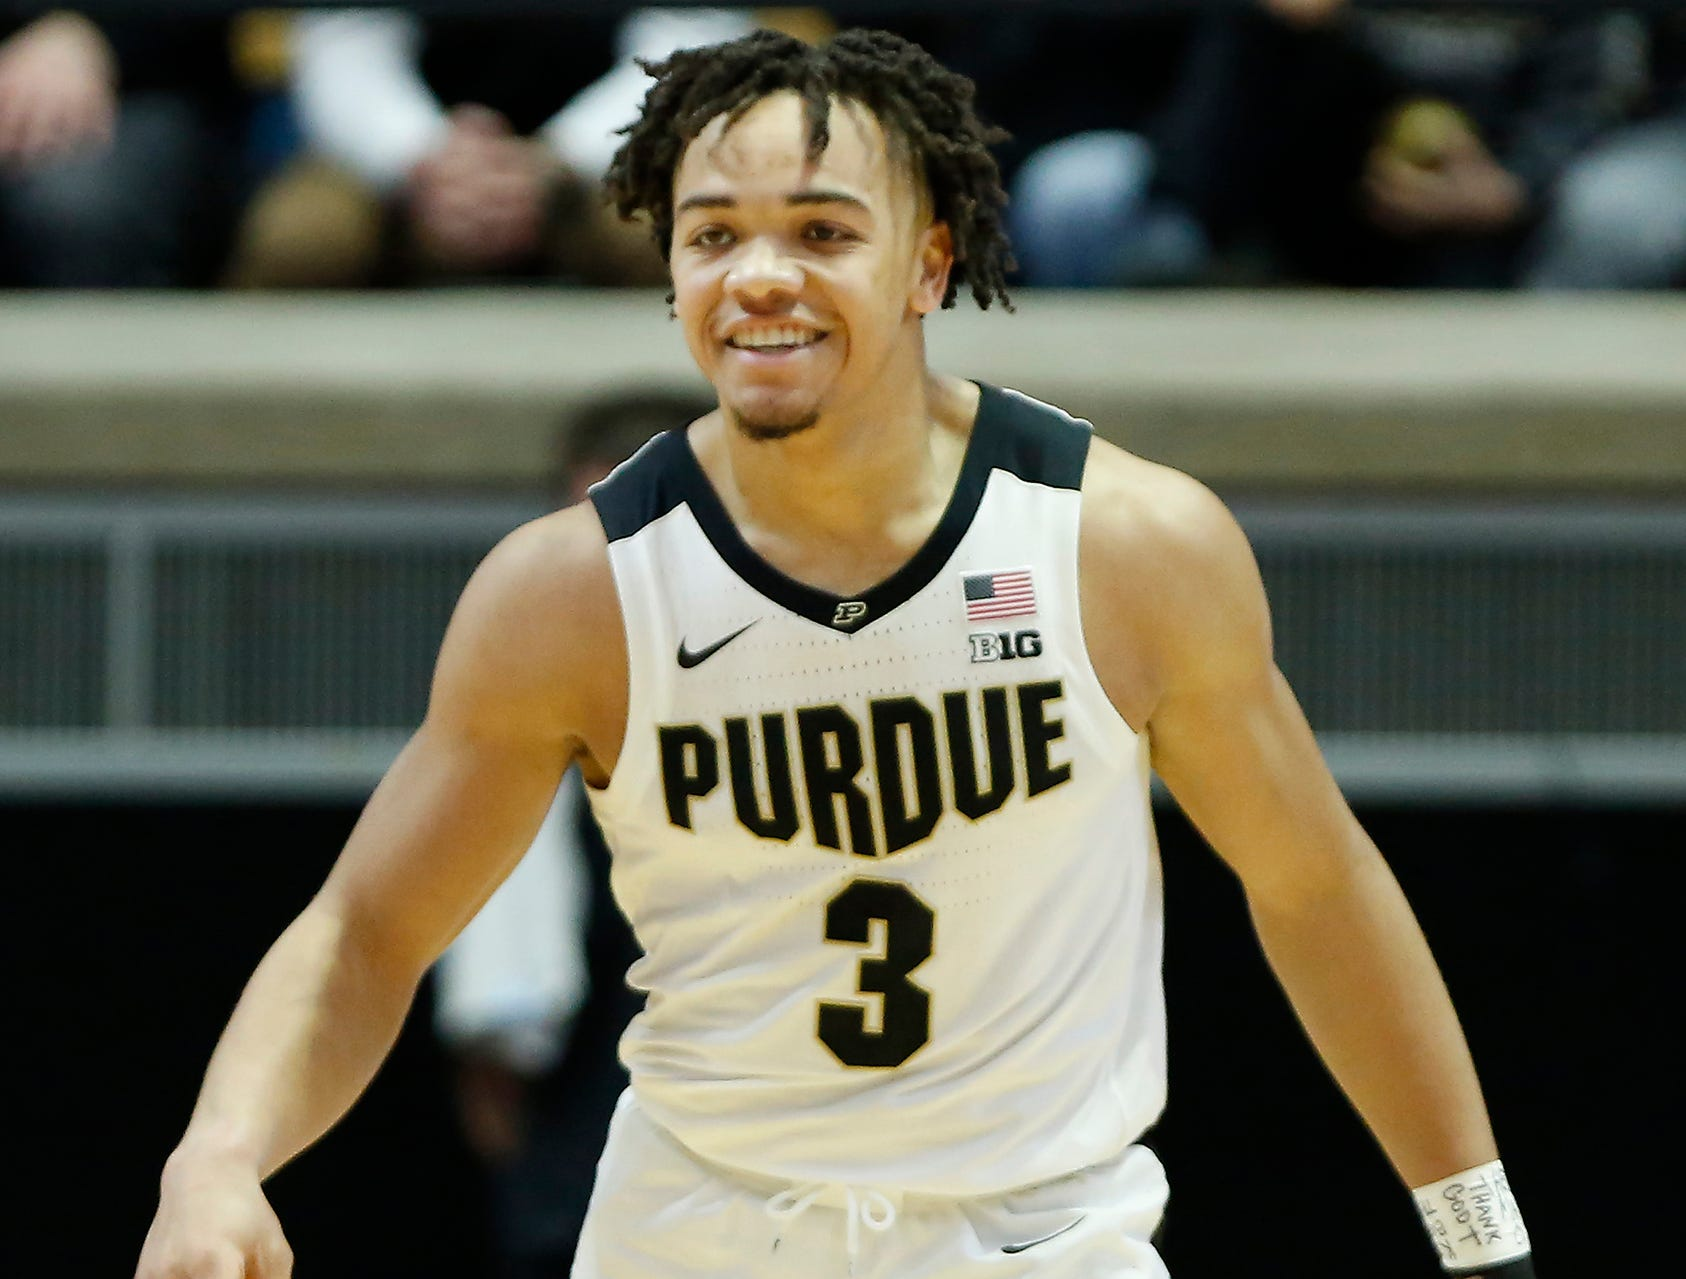 Carsen Edwards of Purdue grins as the Boilermakers hold off a late rally by Belmont Saturday, December 29, 2018, at Mackey Arena. Purdue defeated Belmont 73-62.